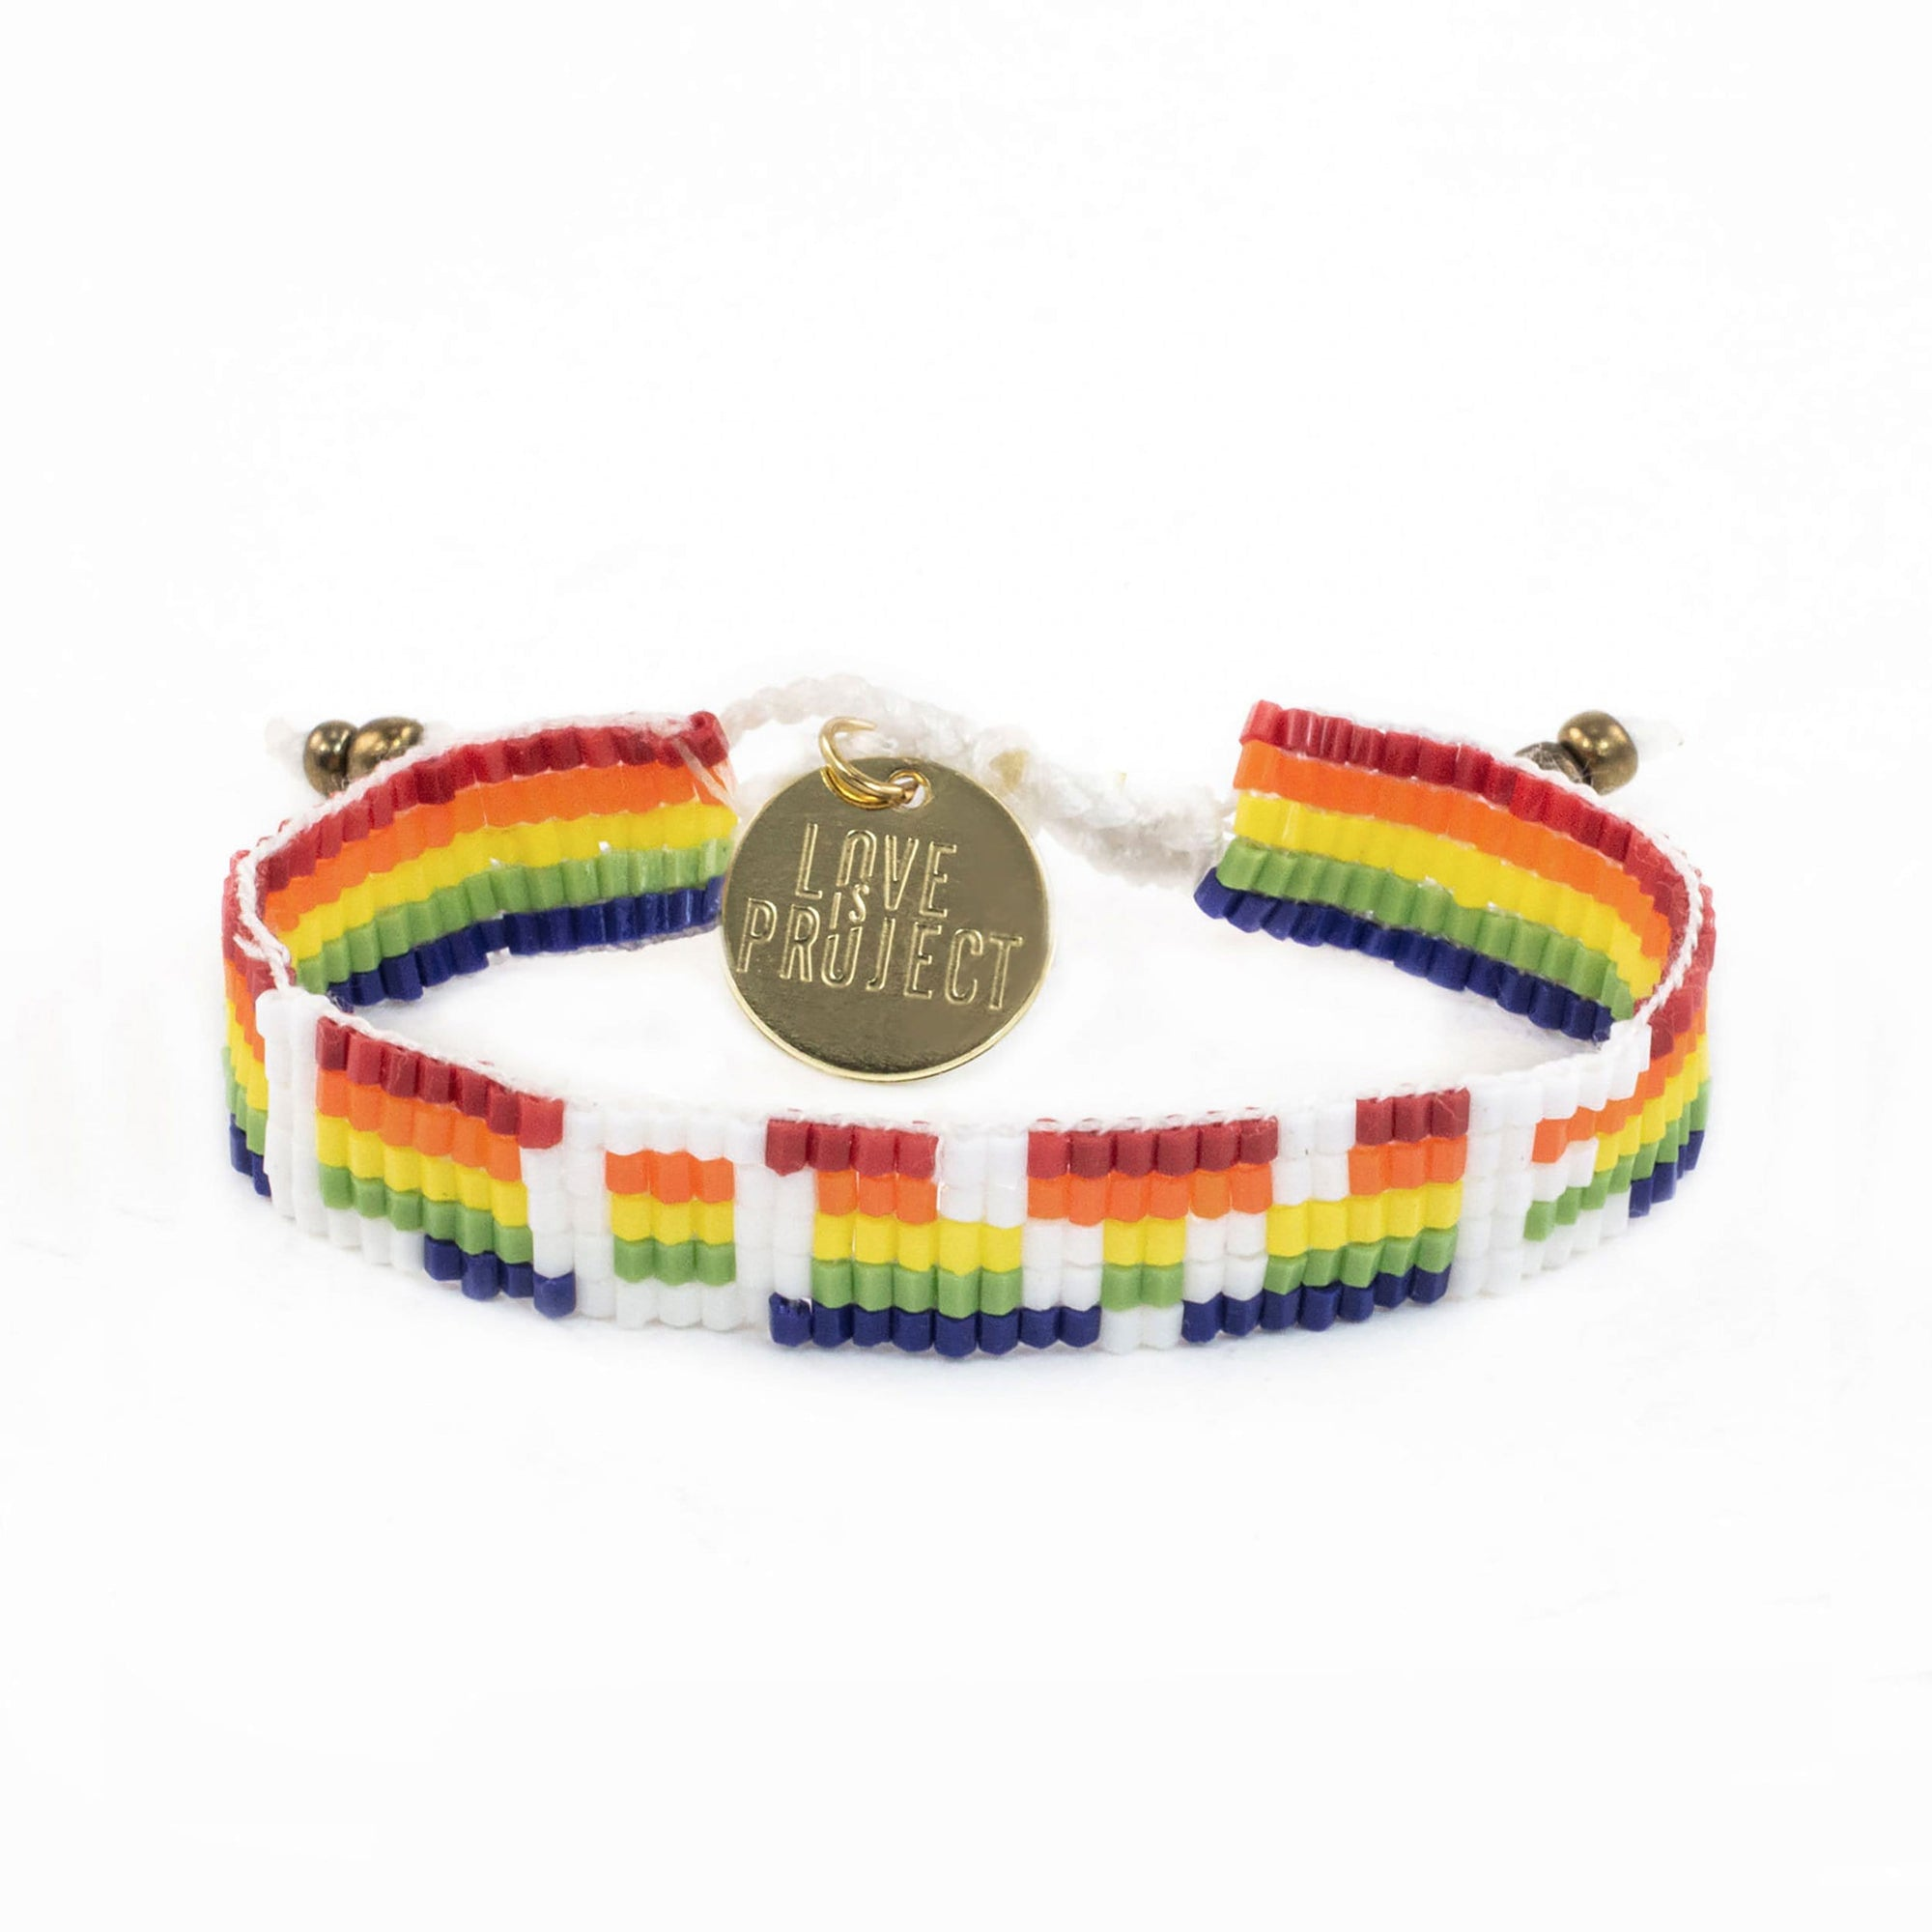 New Arrival -Seed Bead LOVE Bracelet - Rainbow